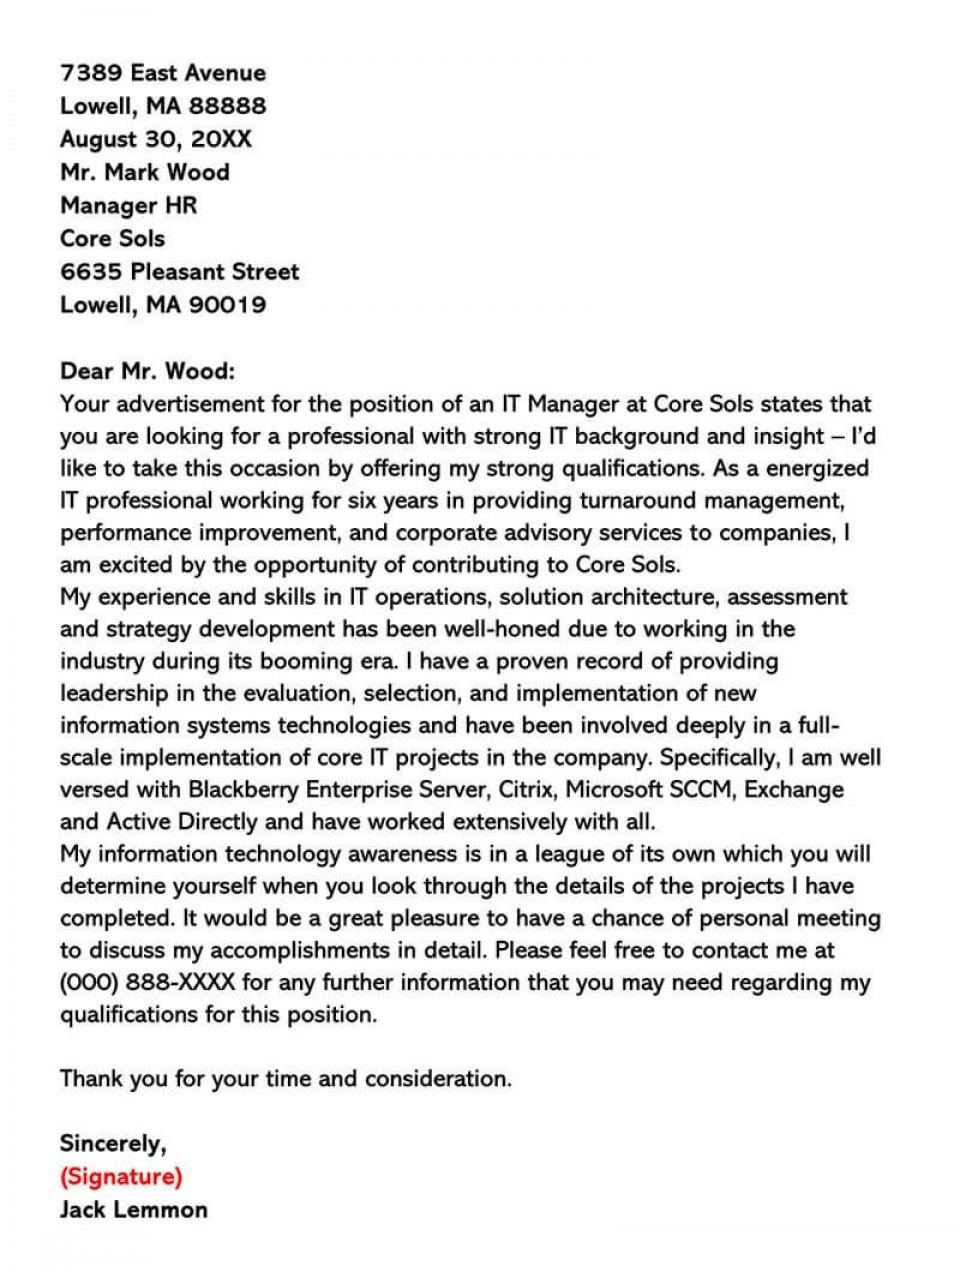 008 Stupendou General Manager Cover Letter Template Inspiration  Hotel960